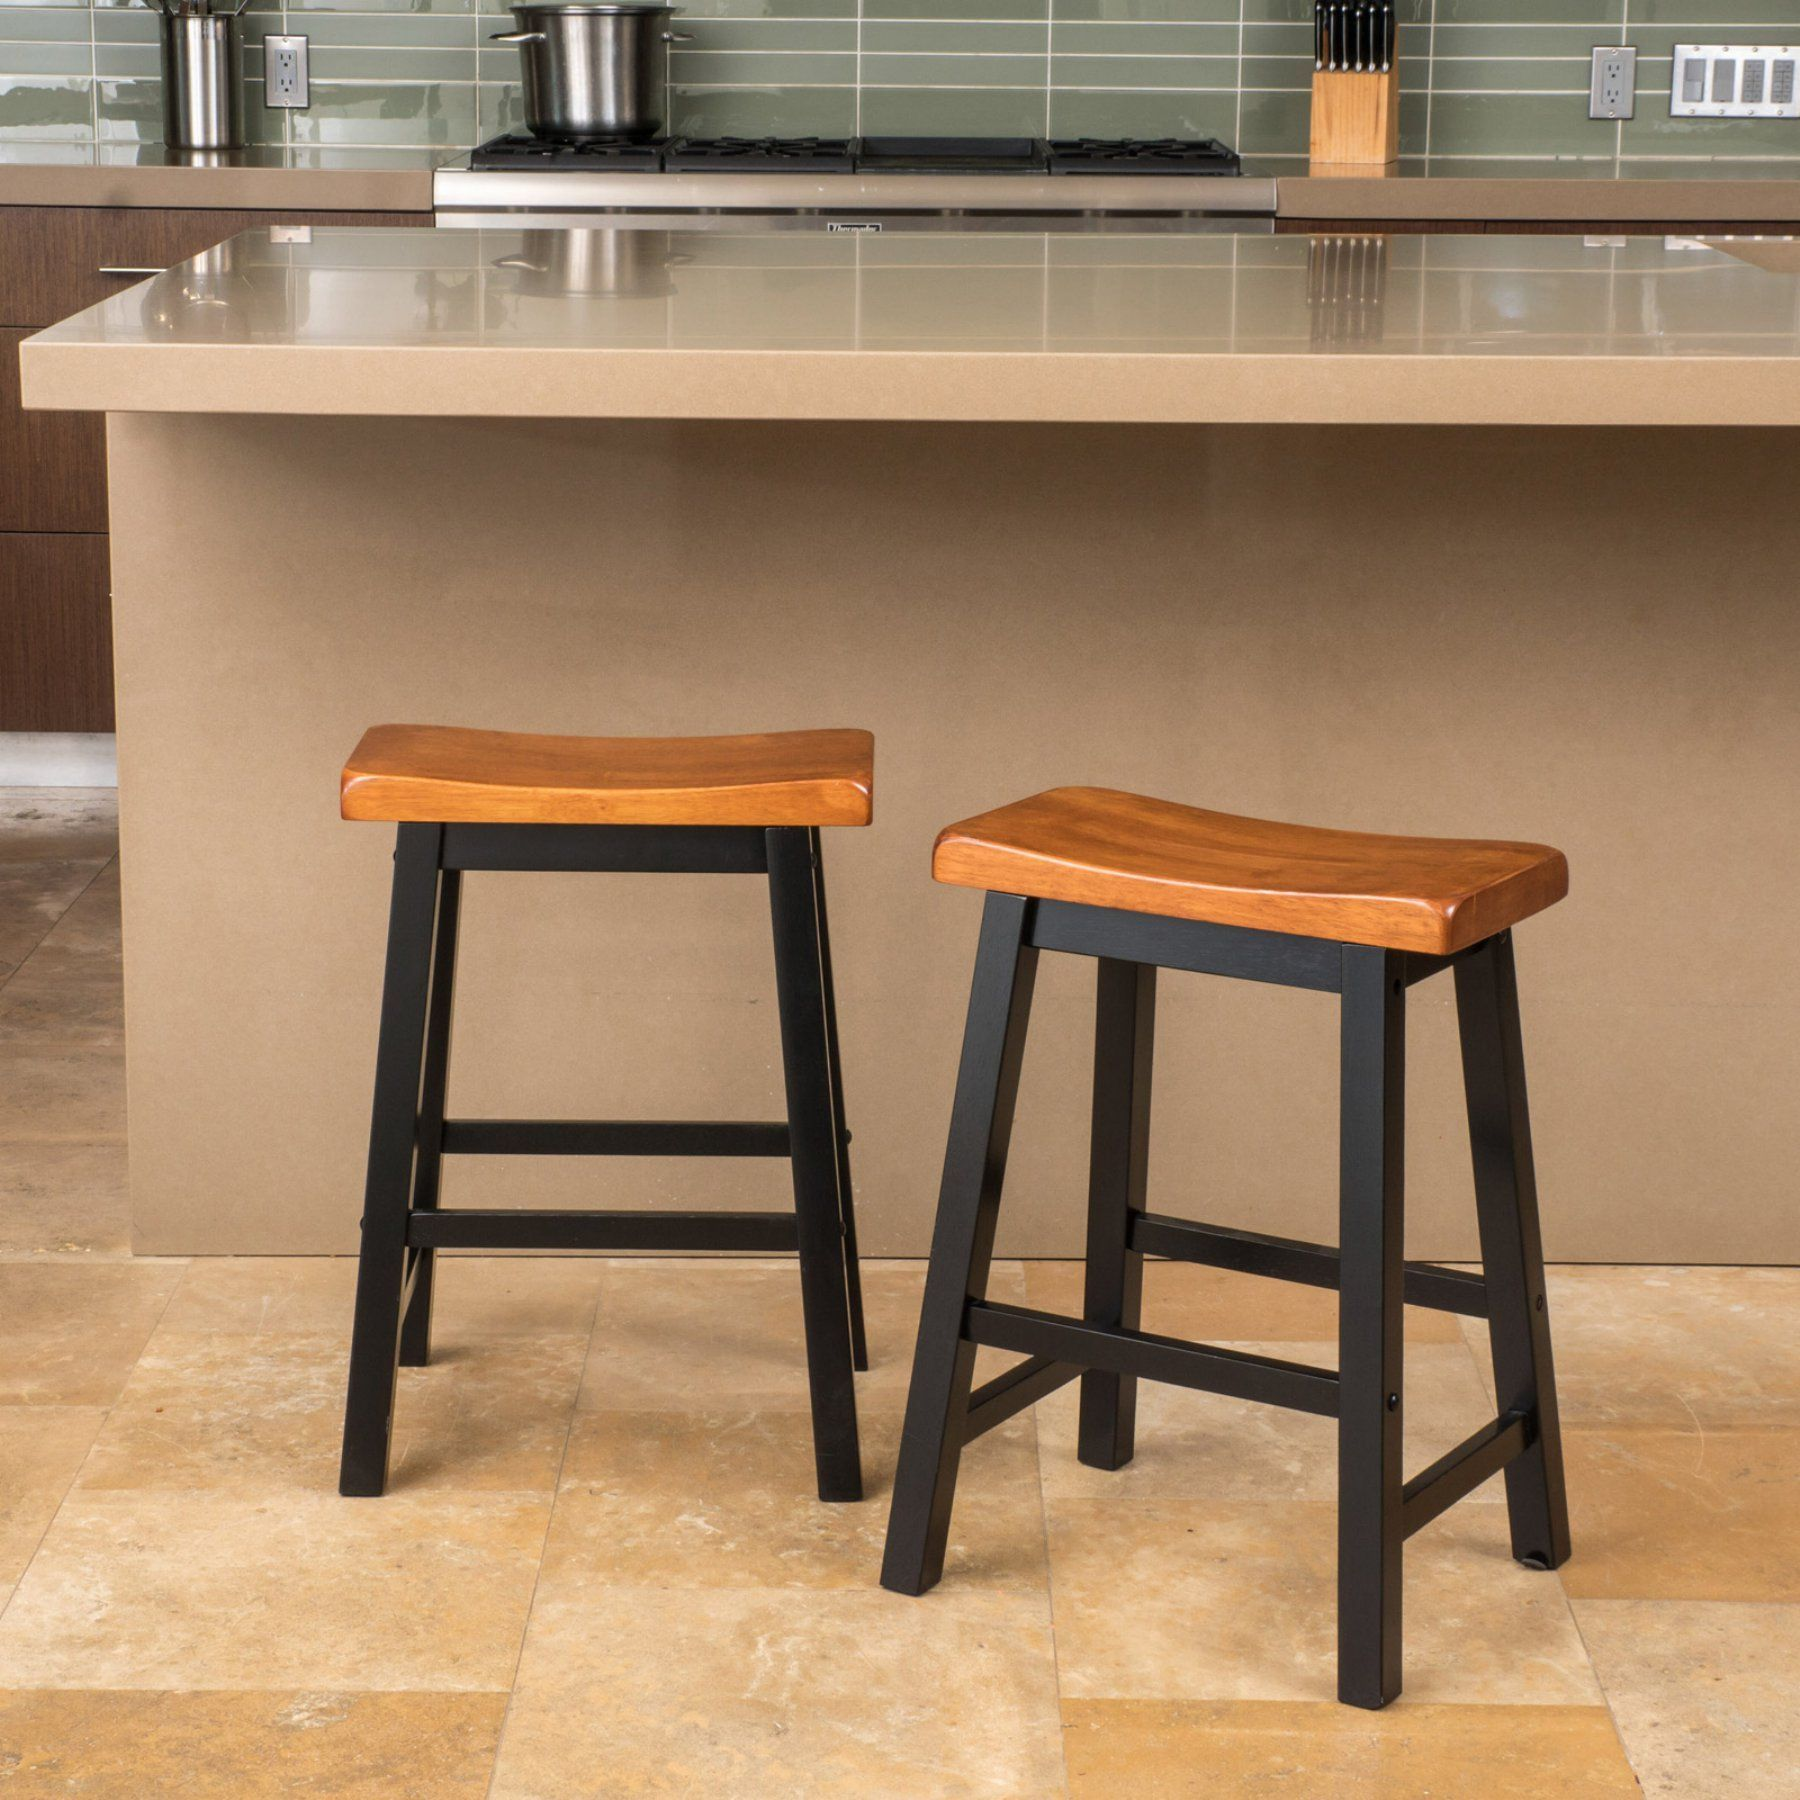 Best Selling Home 24 in. Counter Bar Stool - Set of 2 - 296026